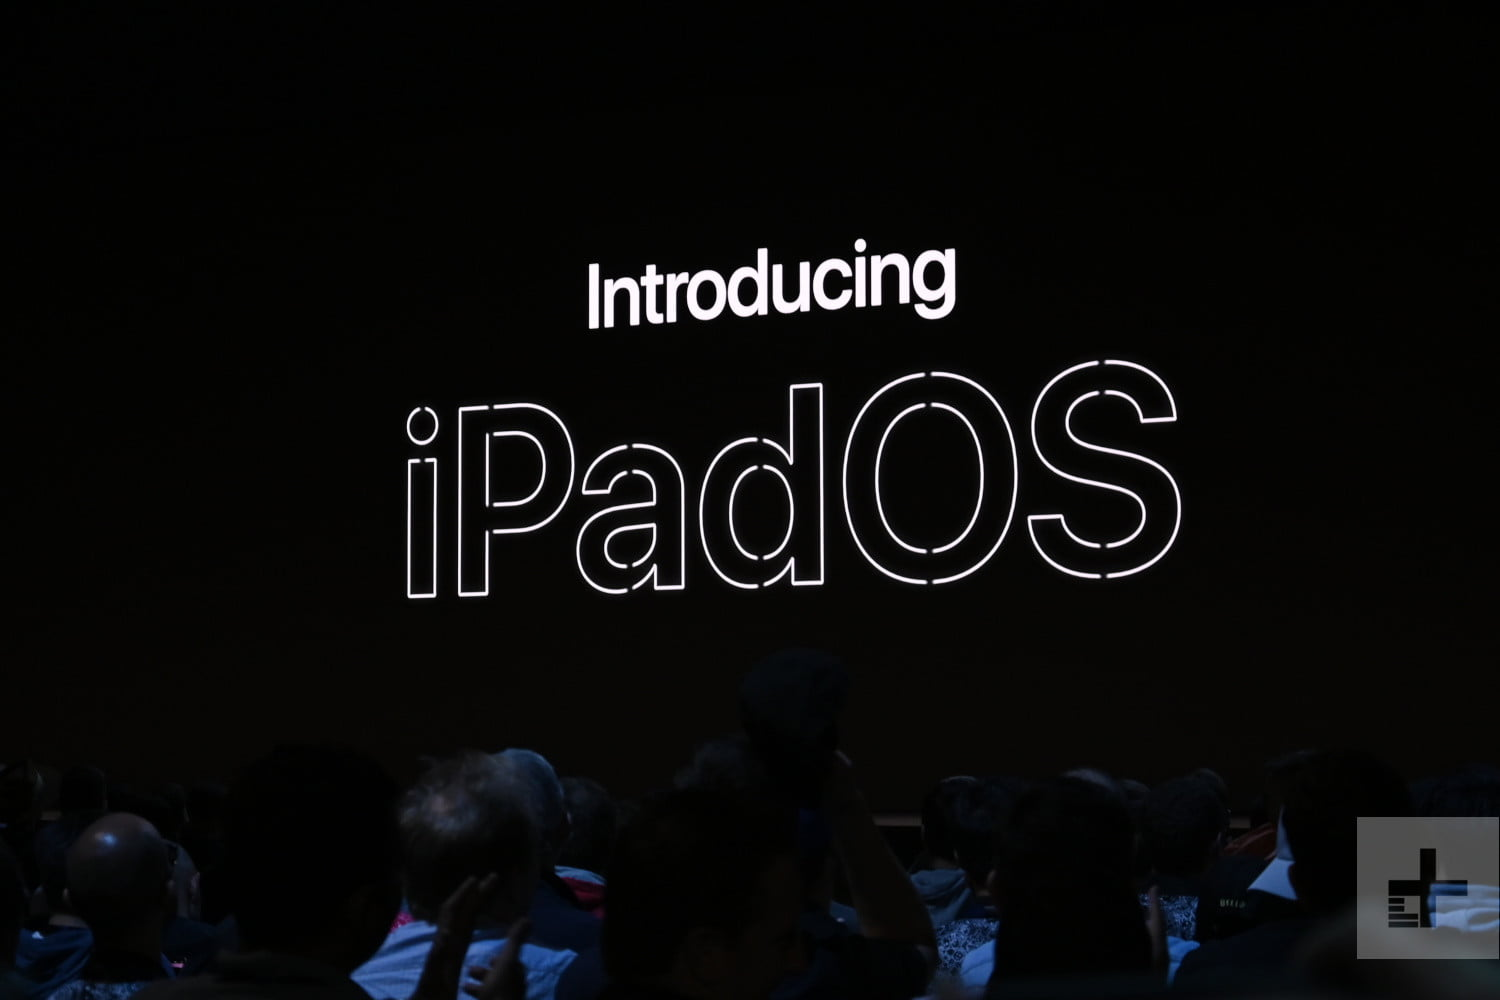 How to Download and Install iPadOS on Your iPad | Digital Trends